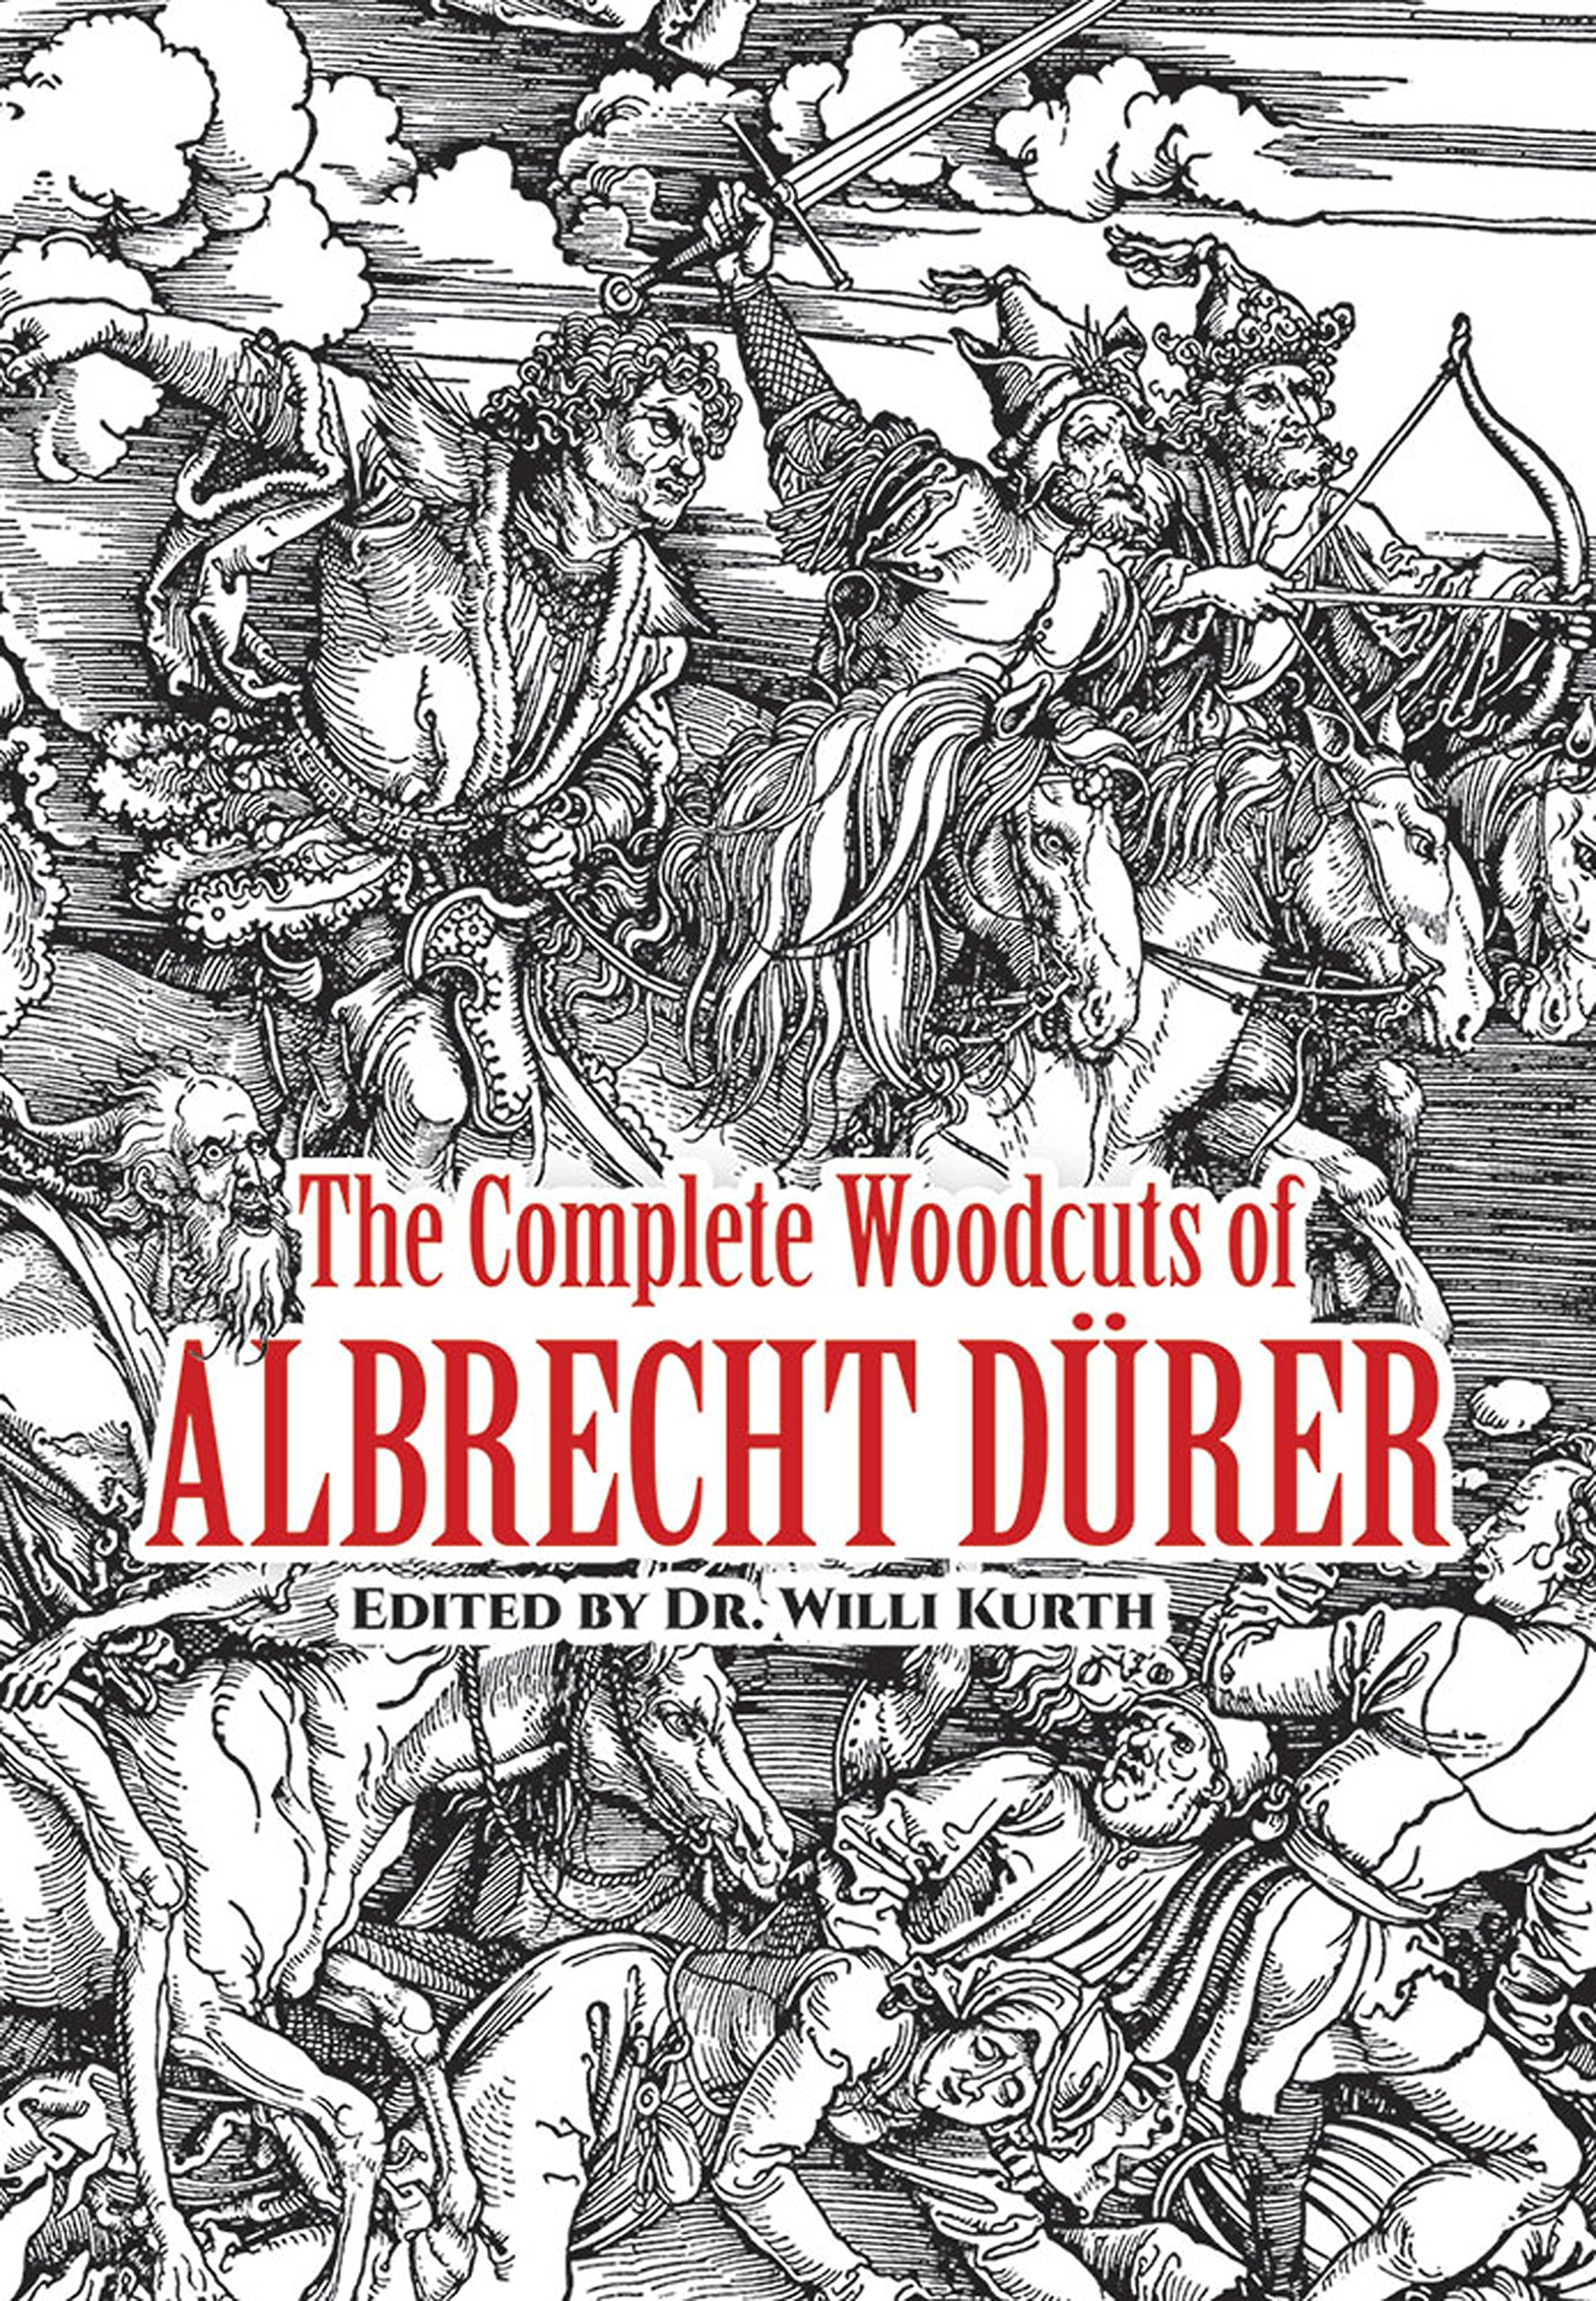 The Complete Woodcuts of Albrecht Durer thumbnail